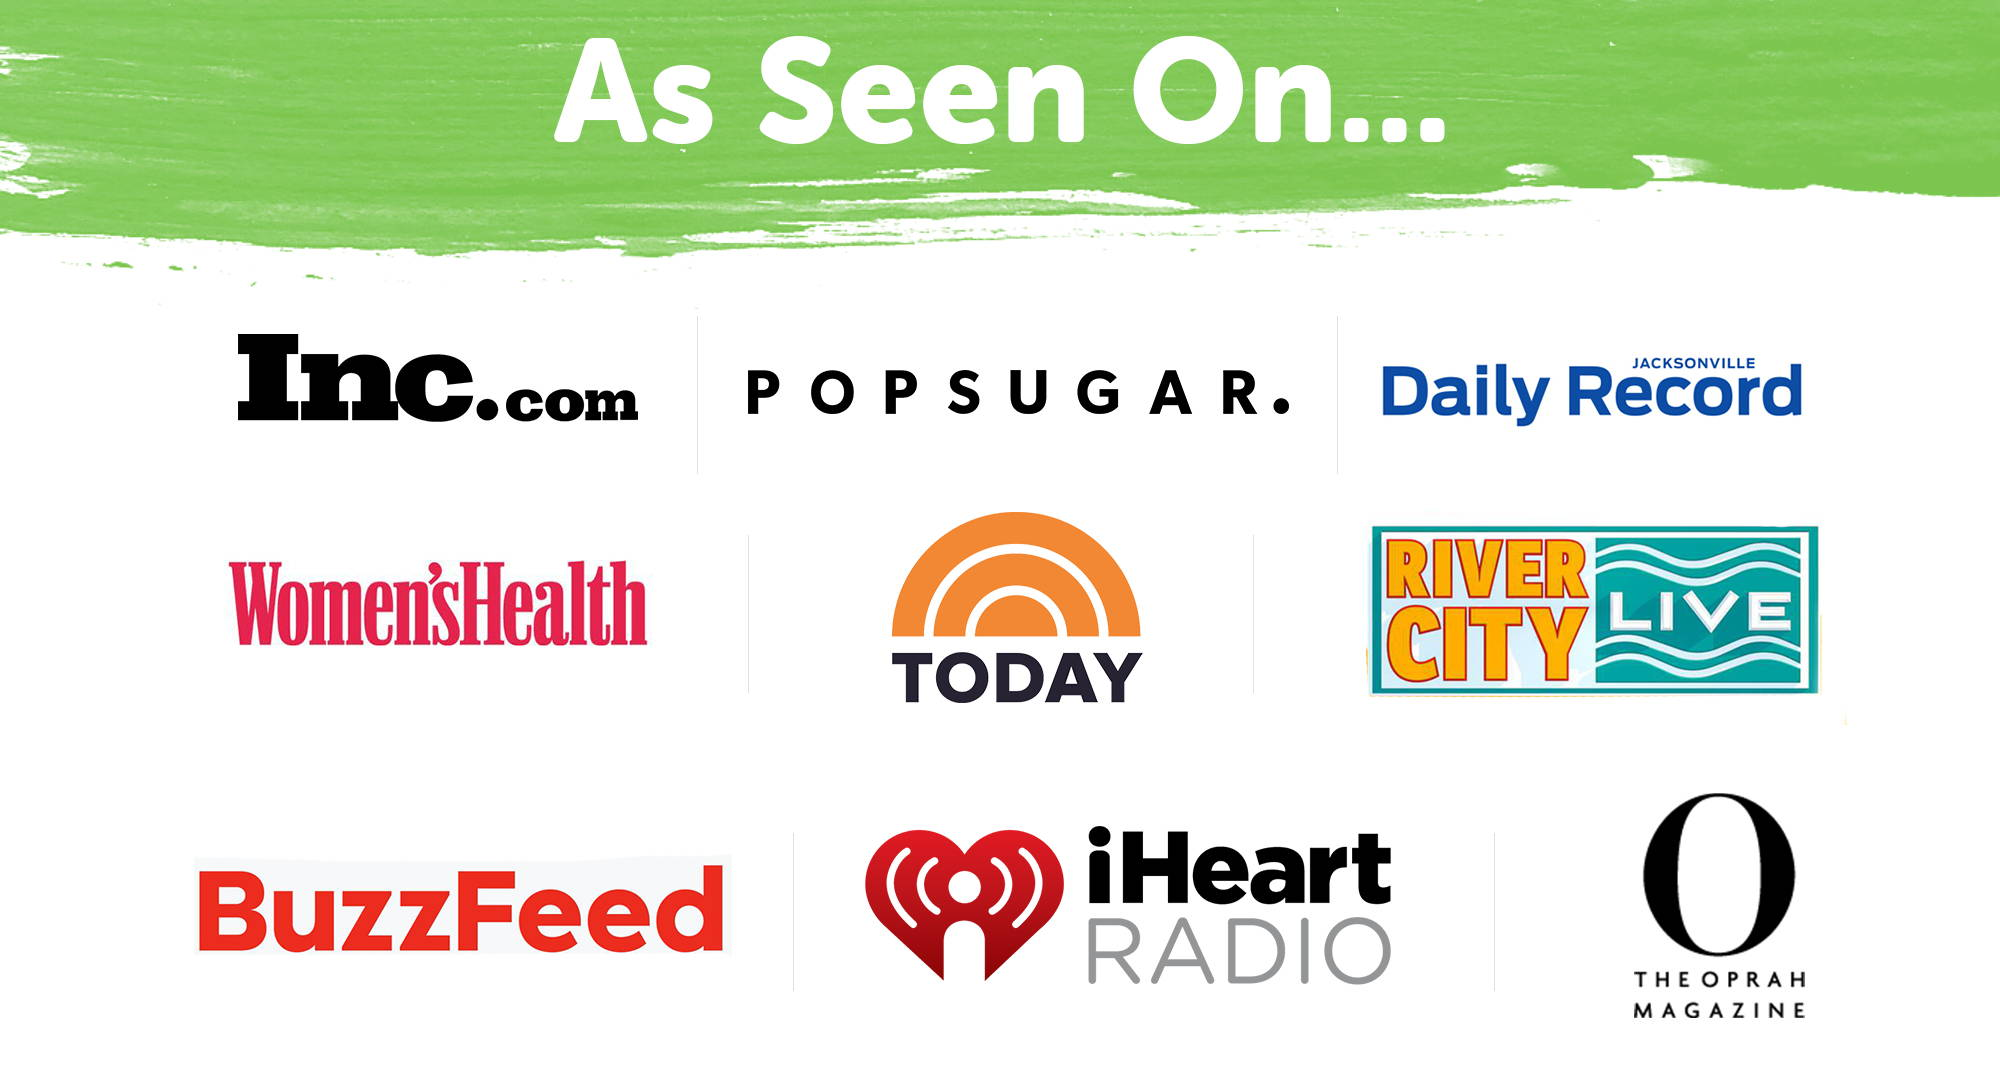 As seen on... Inc.com Popsugar, Jacksonville Daily Record, Women's Health, Today Show, River City Live, BuzzFeed, iHeart Radio